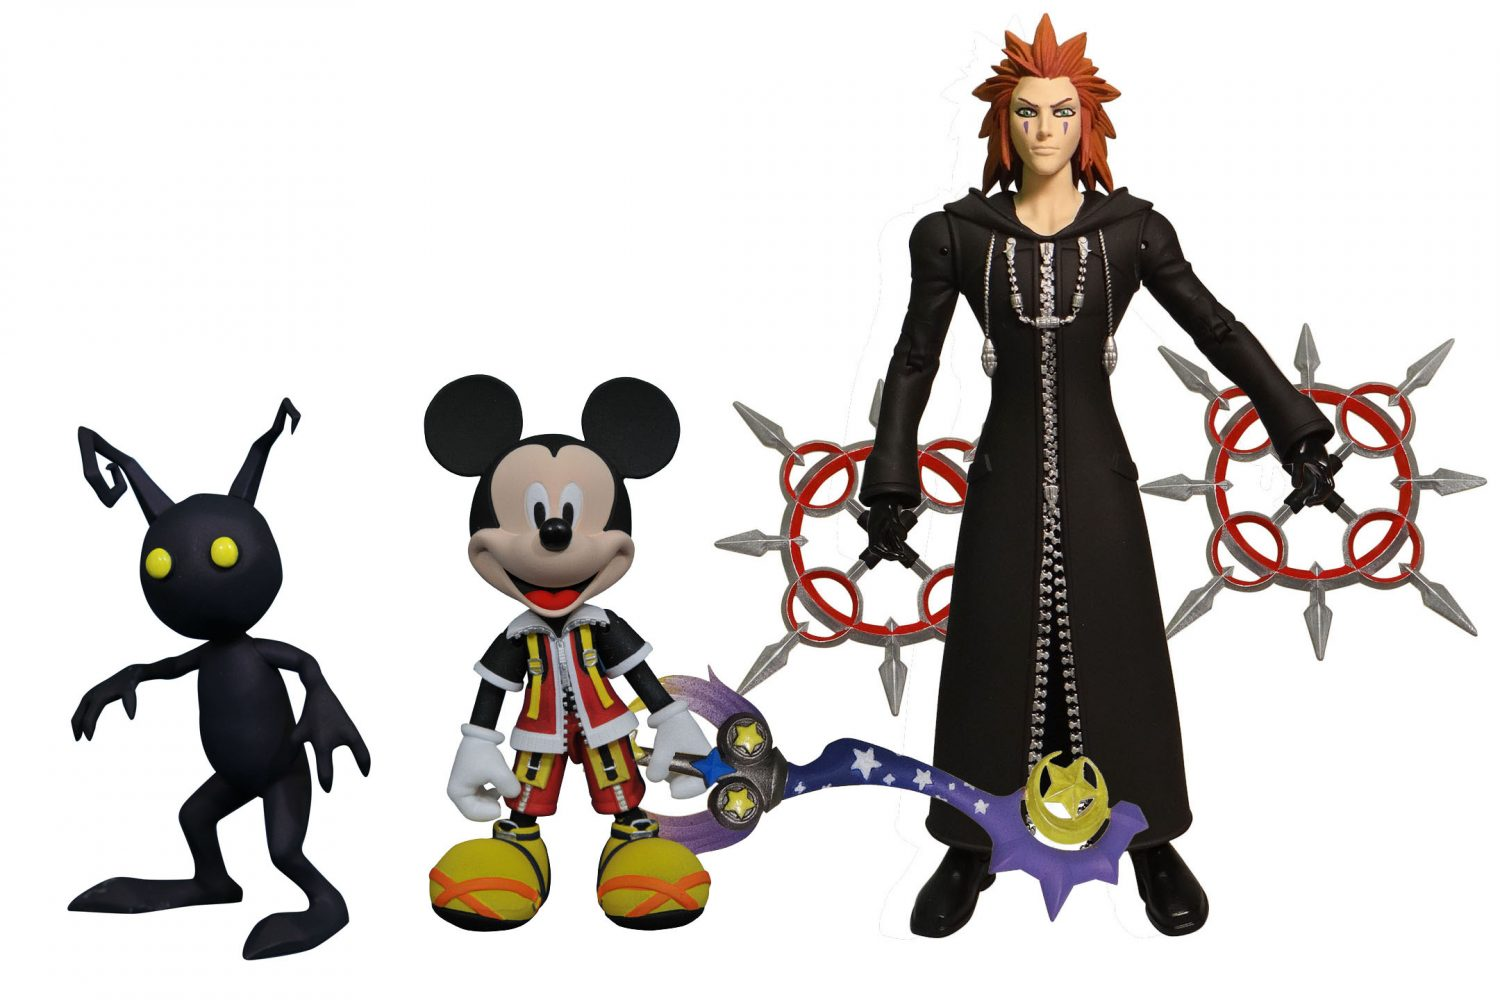 Kingdom Hearts Select Action Figures Hit Comic Shops This Week